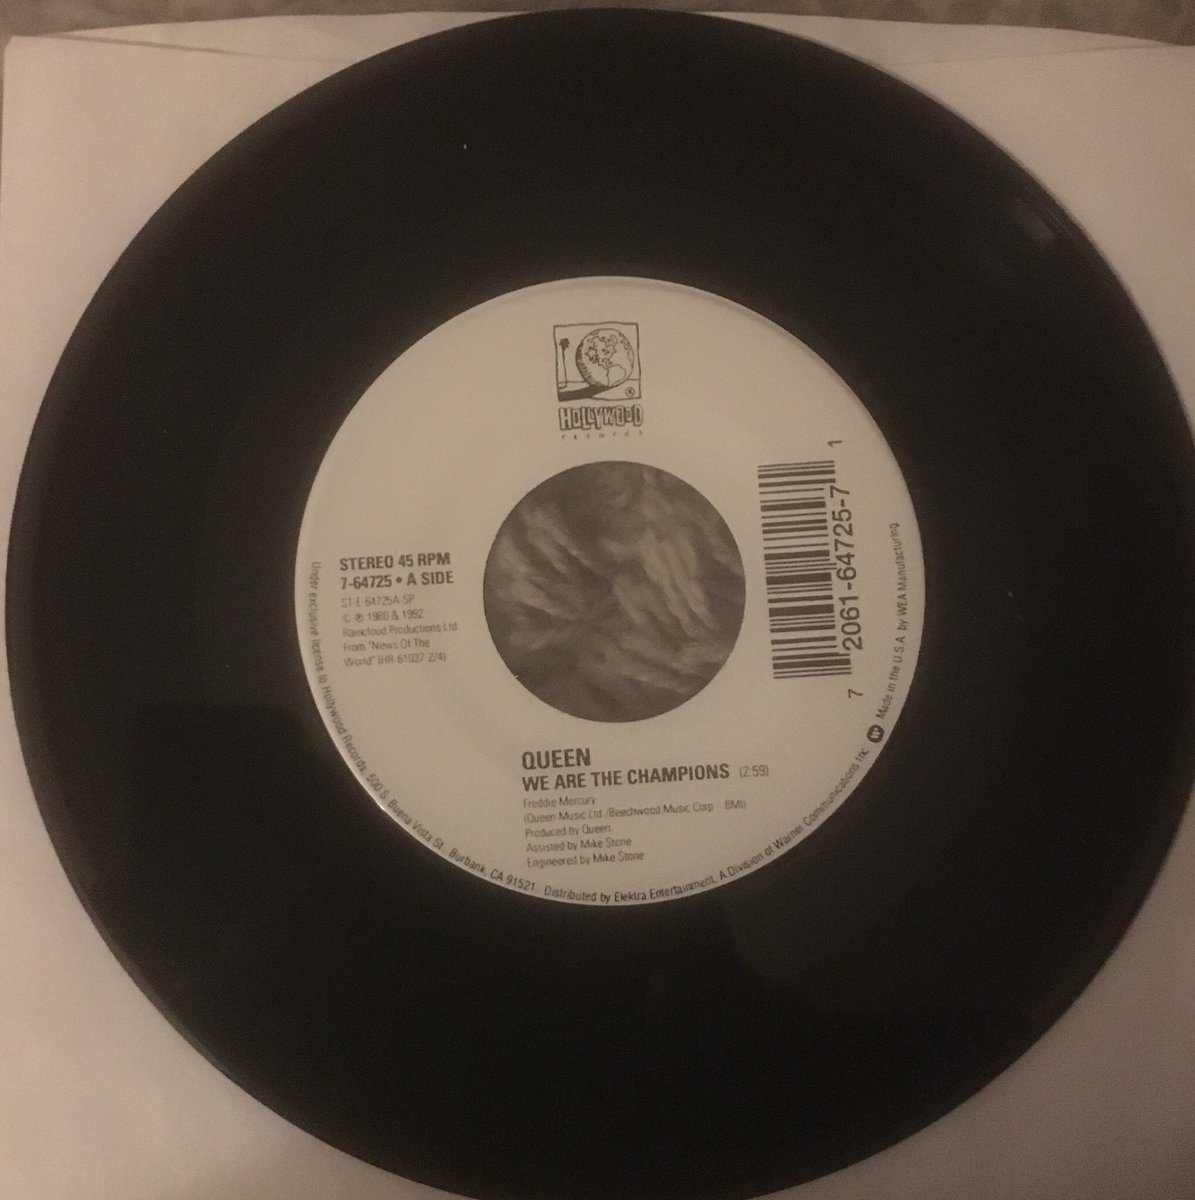 """228/ """"We Are The Champions - These Are The Days Of Our Lived"""": 7"""" USA juke box disc. I have a feeling it was released to celebrate Queen's new contract with Hollywood records; released in July 1992 #Queen #FreddieMercury #BrianMay #JohnDeacon #RogerTaylor<br>http://pic.twitter.com/gayzTZcRay"""